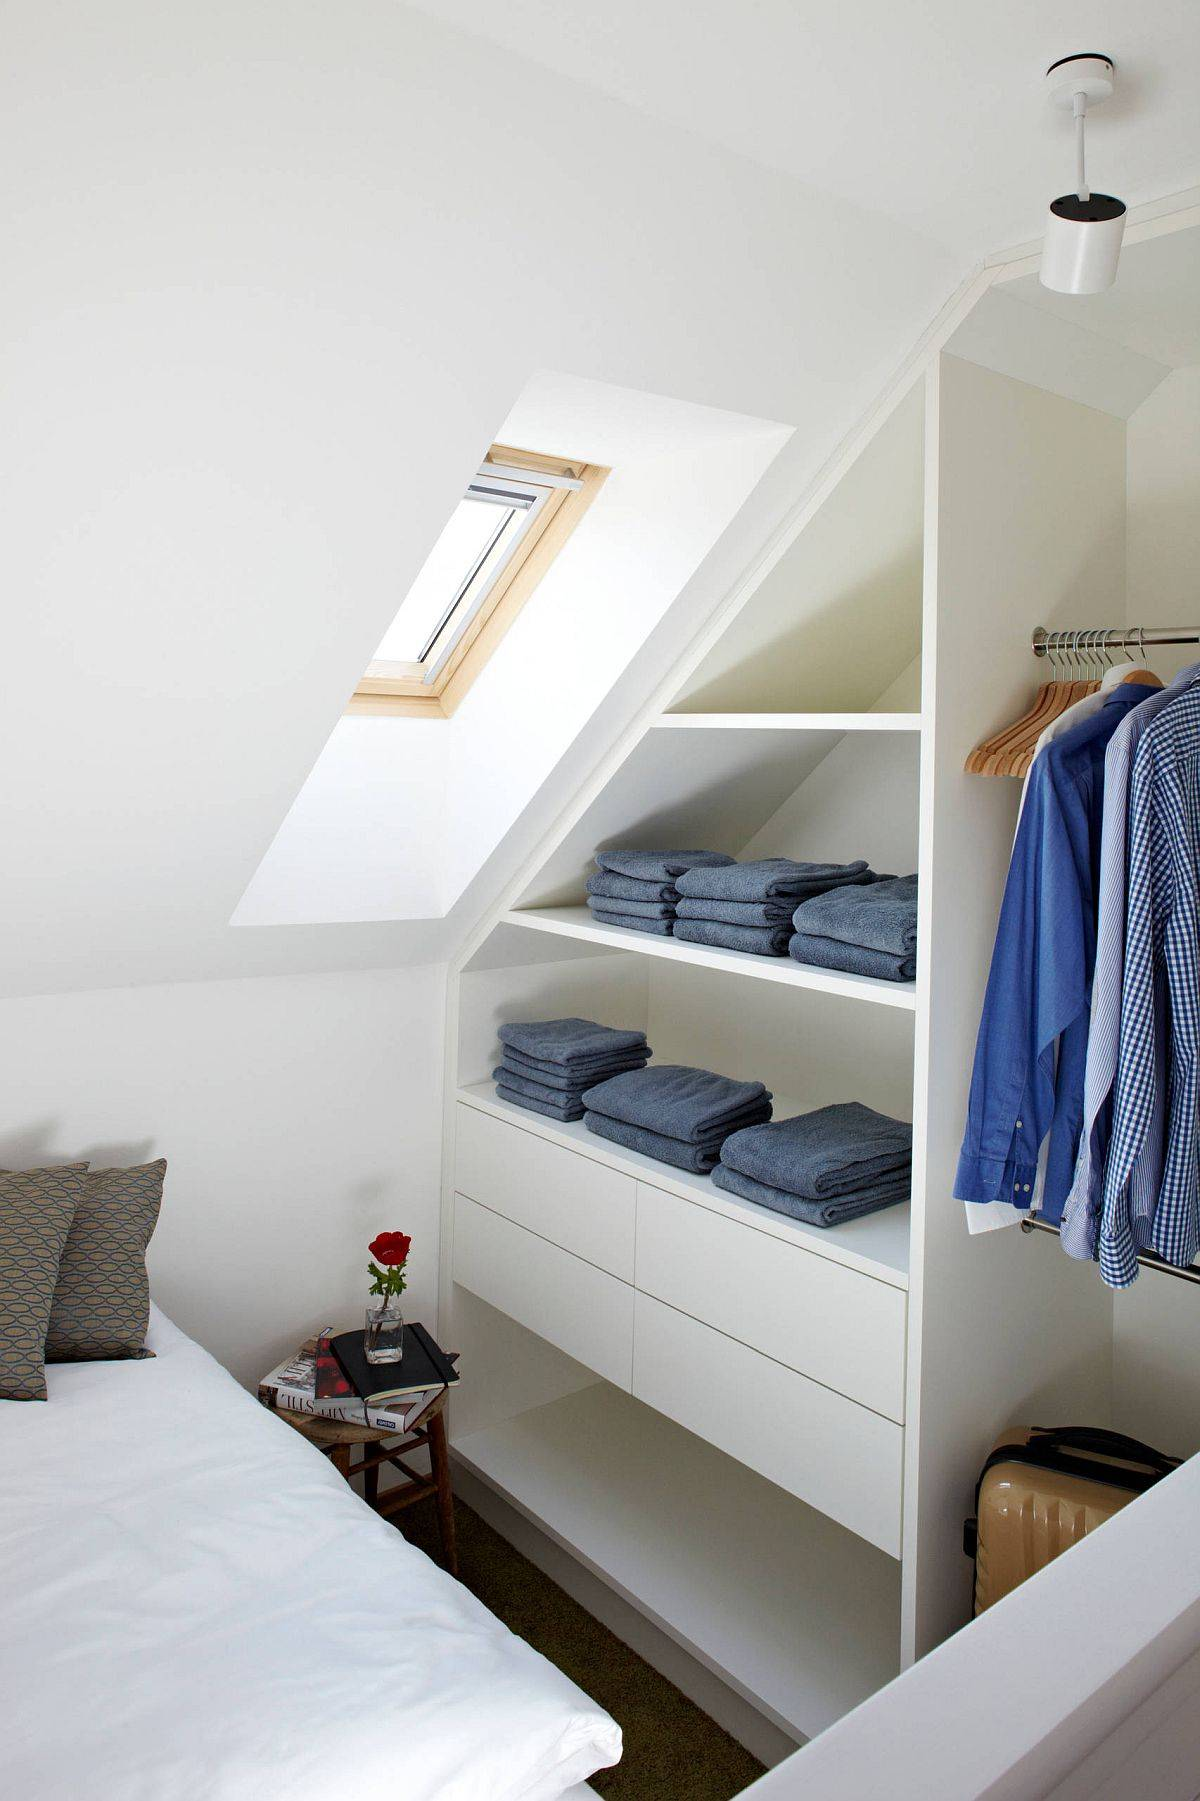 Design a closet that meets your specific wardrobe needs